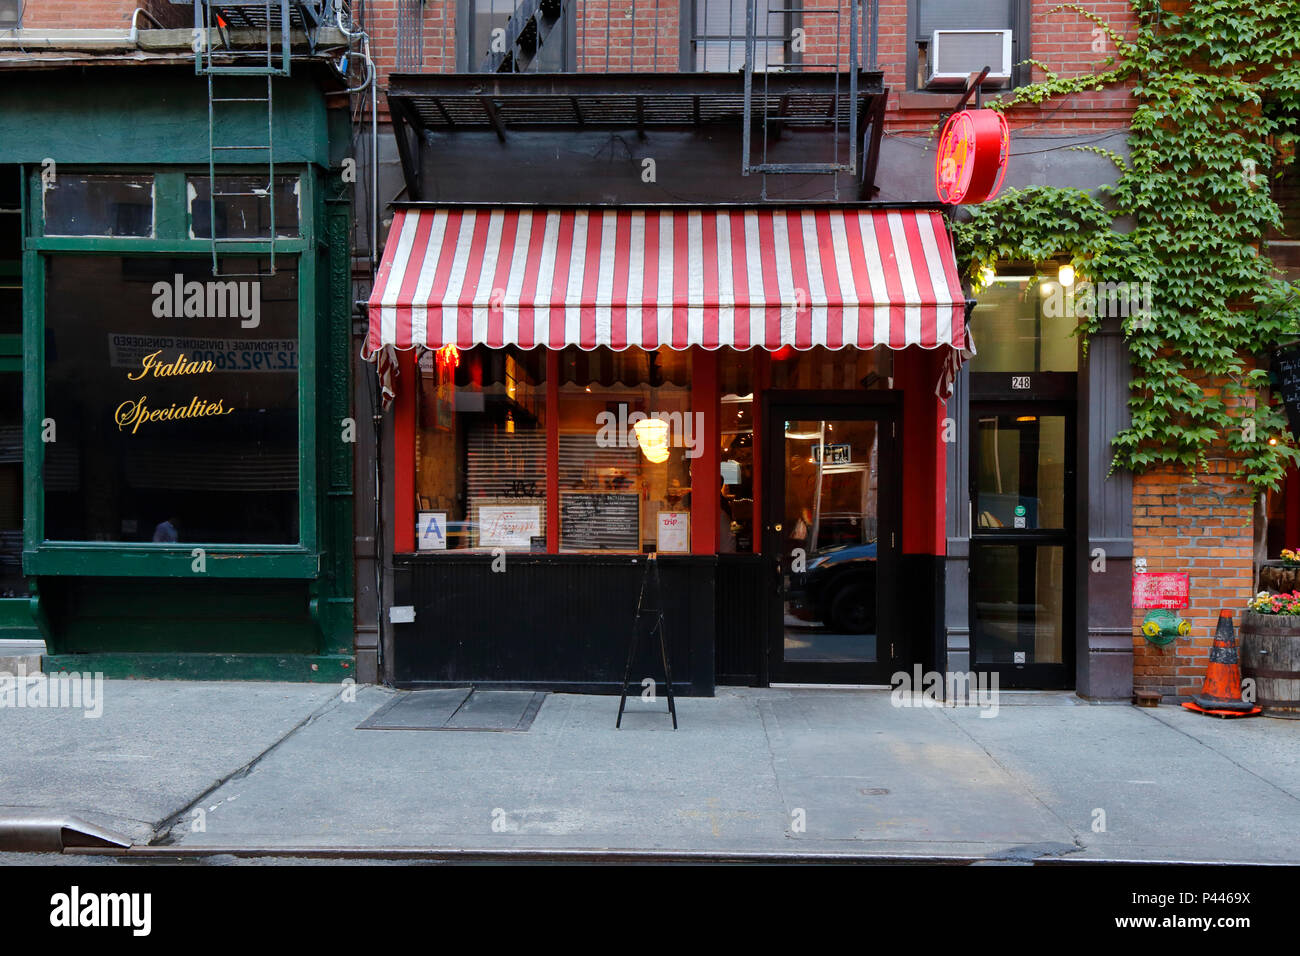 Parm 248 Mulberry St New York Ny Exterior Storefront Of An Italian Restaurant In The Nolita Neighborhood Of Manhattan Stock Photo Alamy